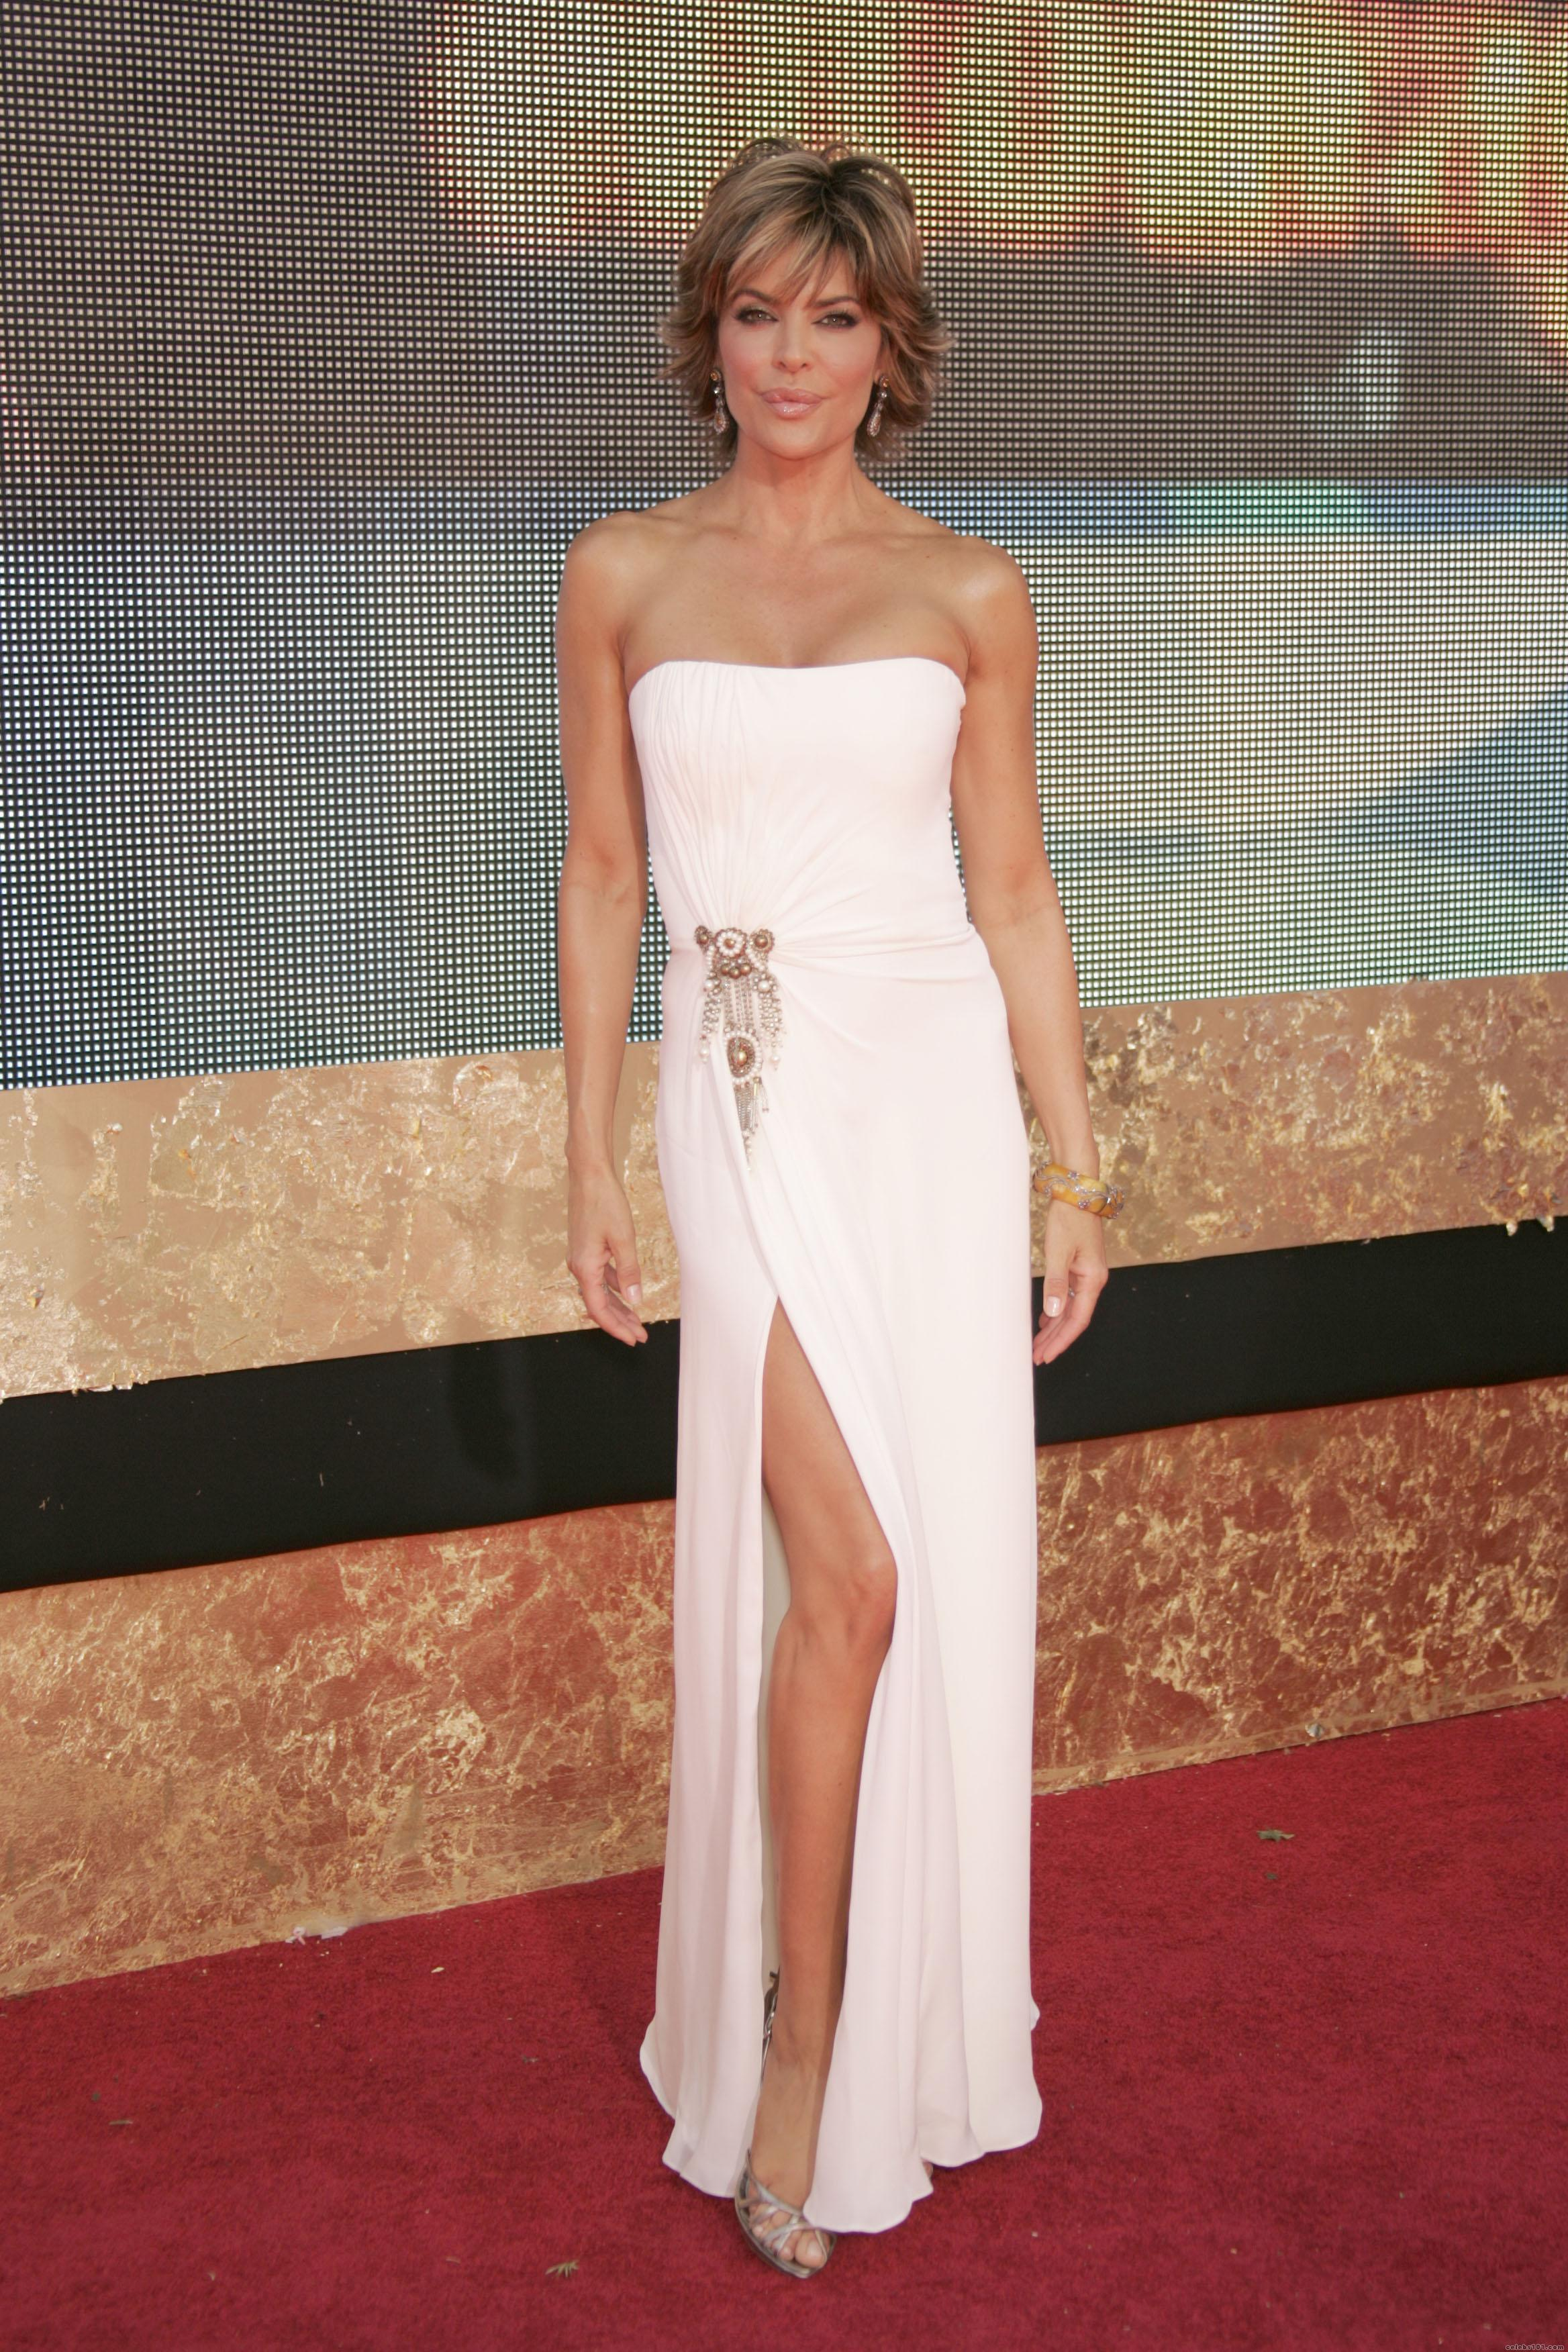 http://www.celebs101.com/gallery/Lisa_Rinna/185627/01160_Lisa_Rinna_59th_Emmy_Awards_933_123_33lo.jpg